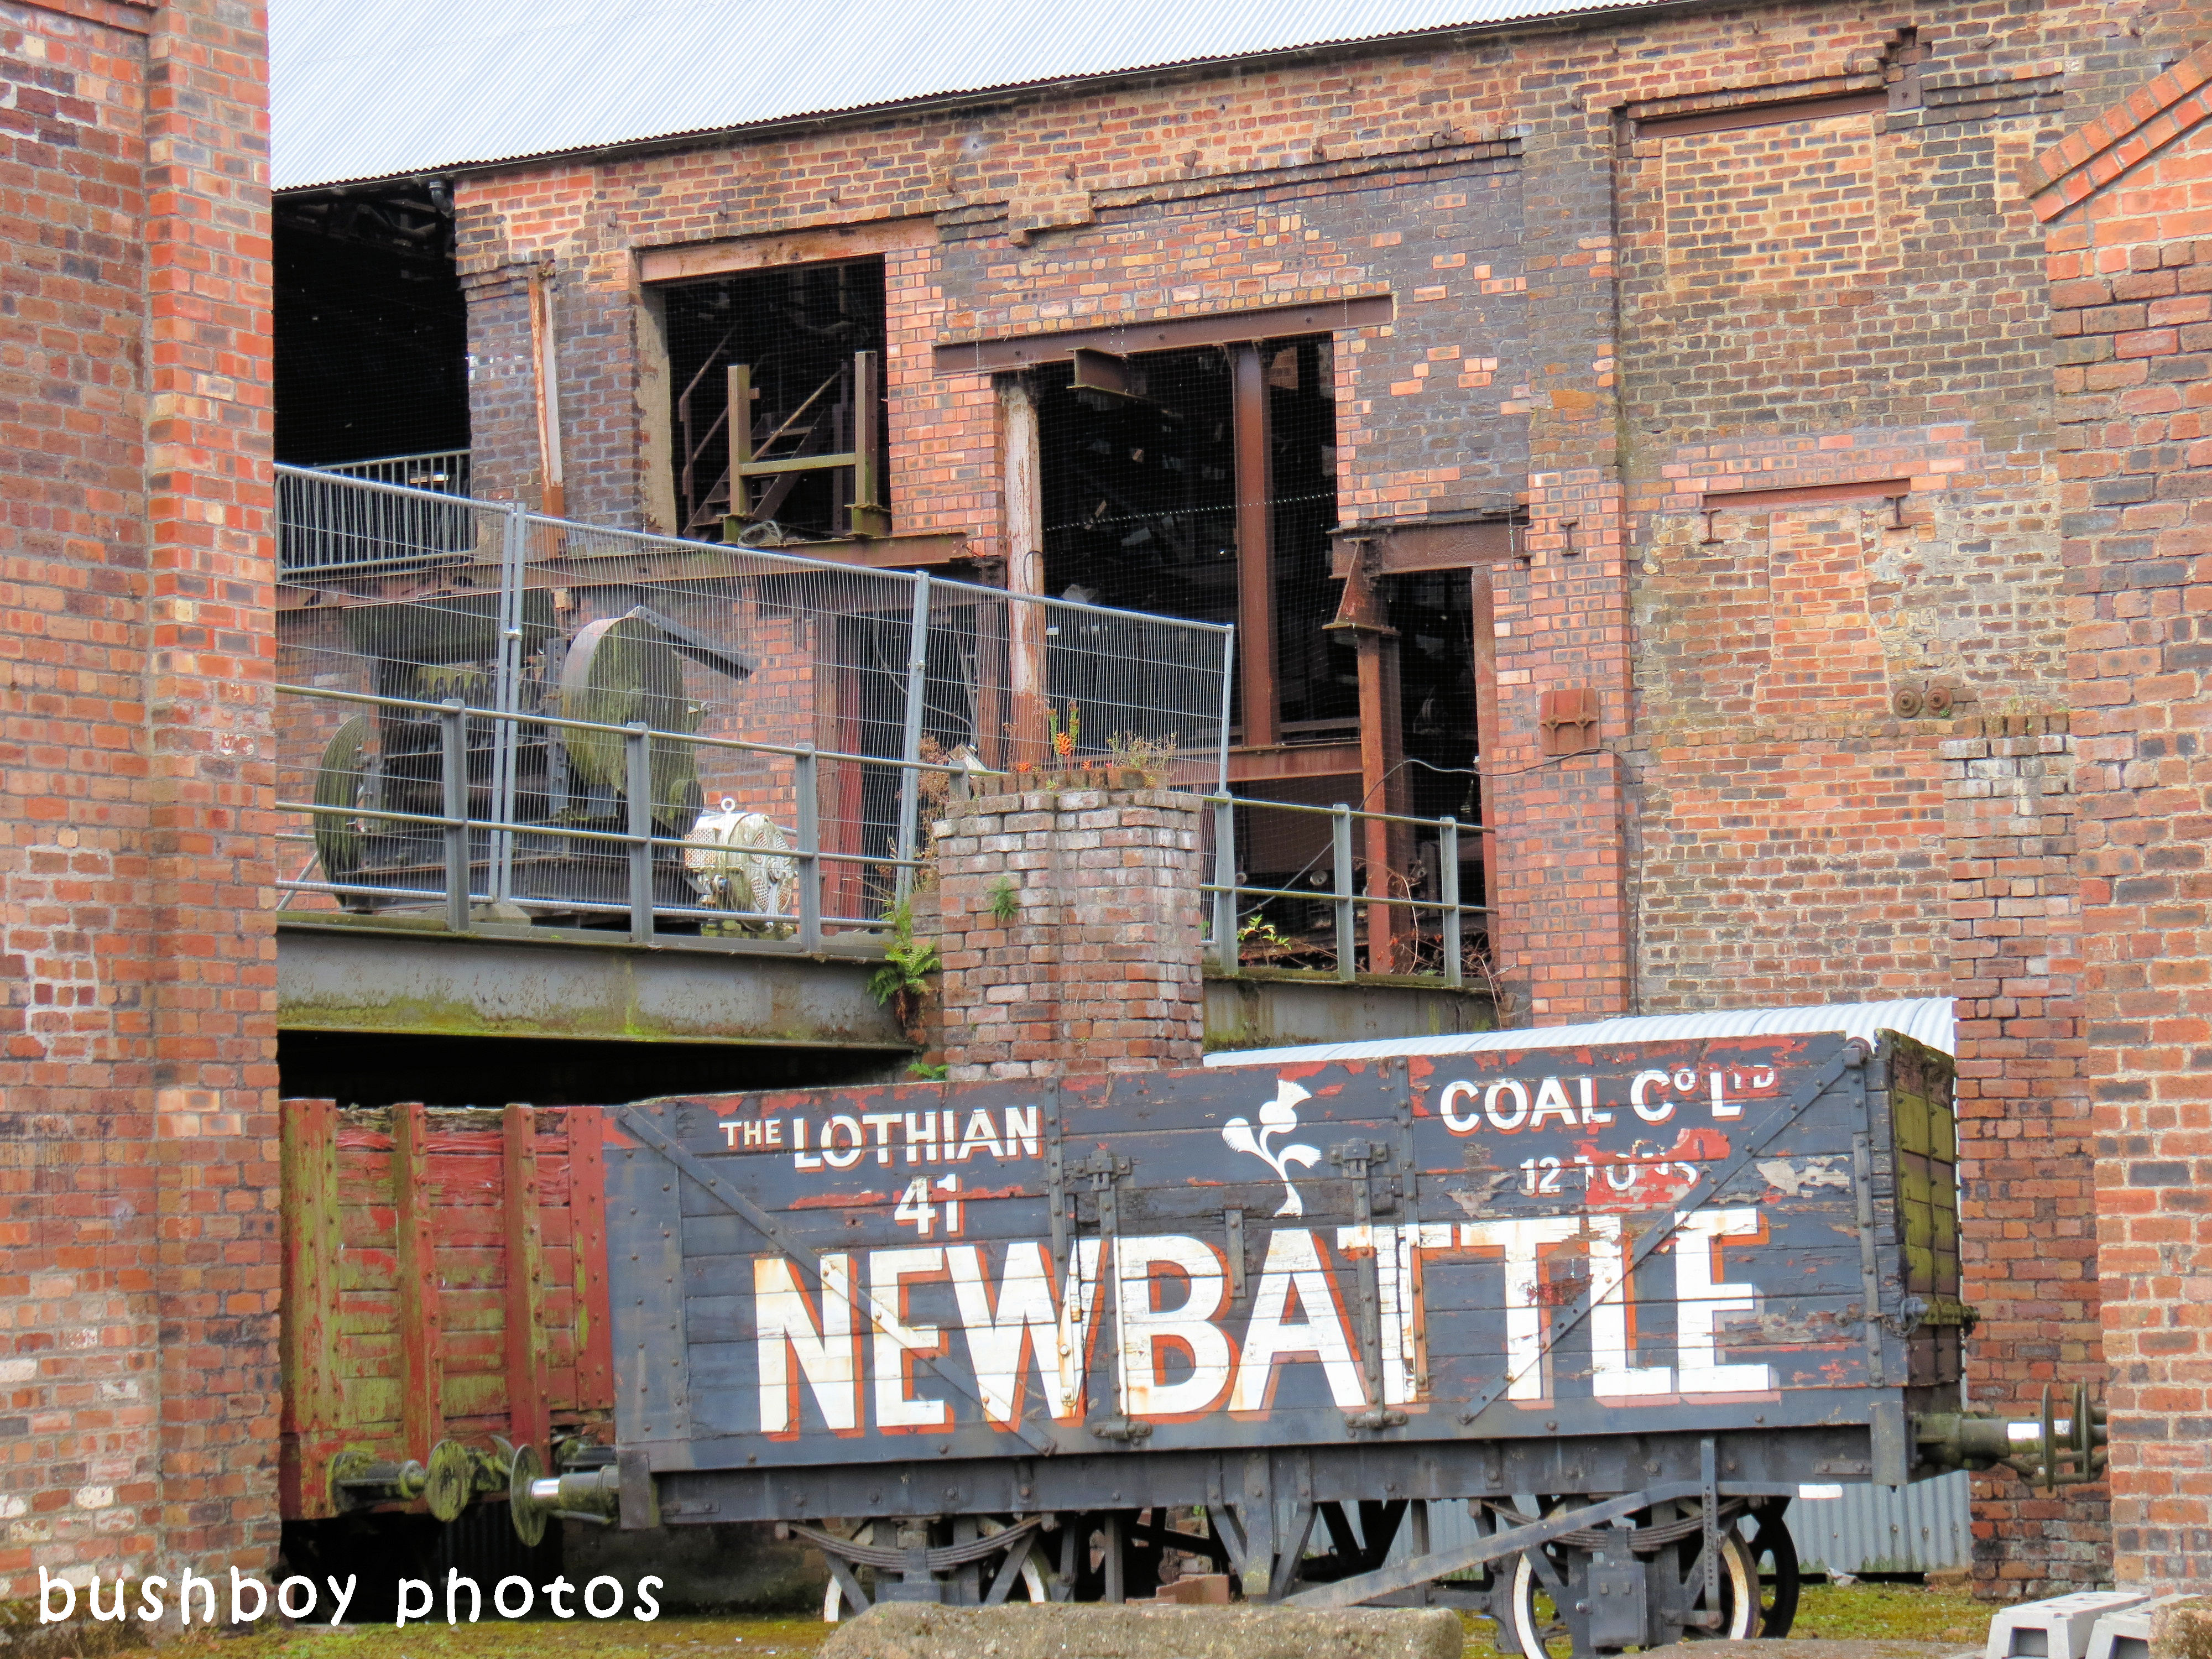 180607_blog challenge_traces of the past_train carriage_coal mine_scotland